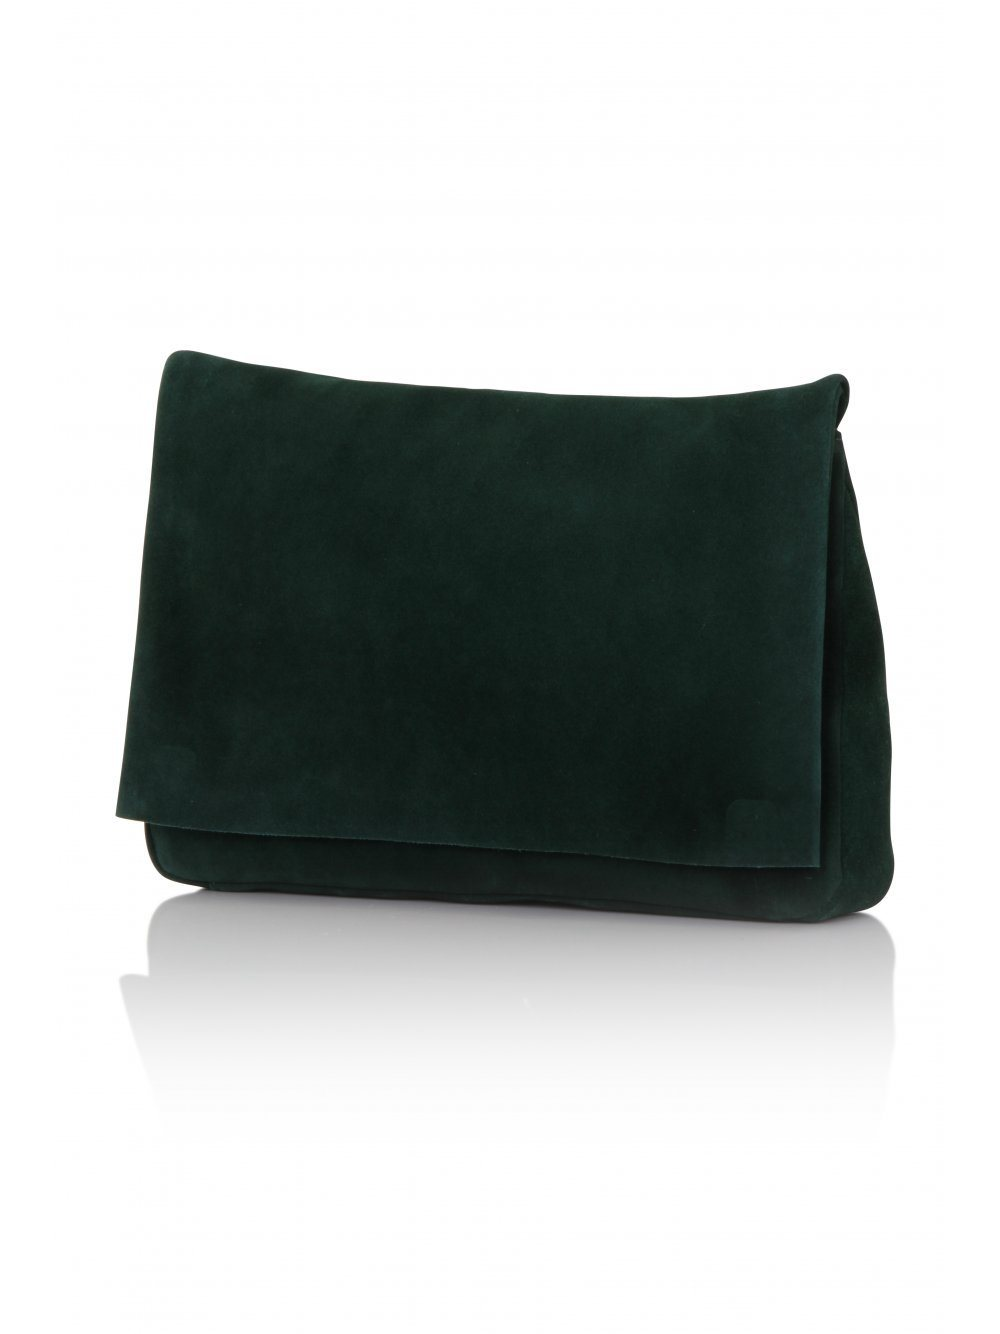 Forest Green Suede Oversized Clutch Bag